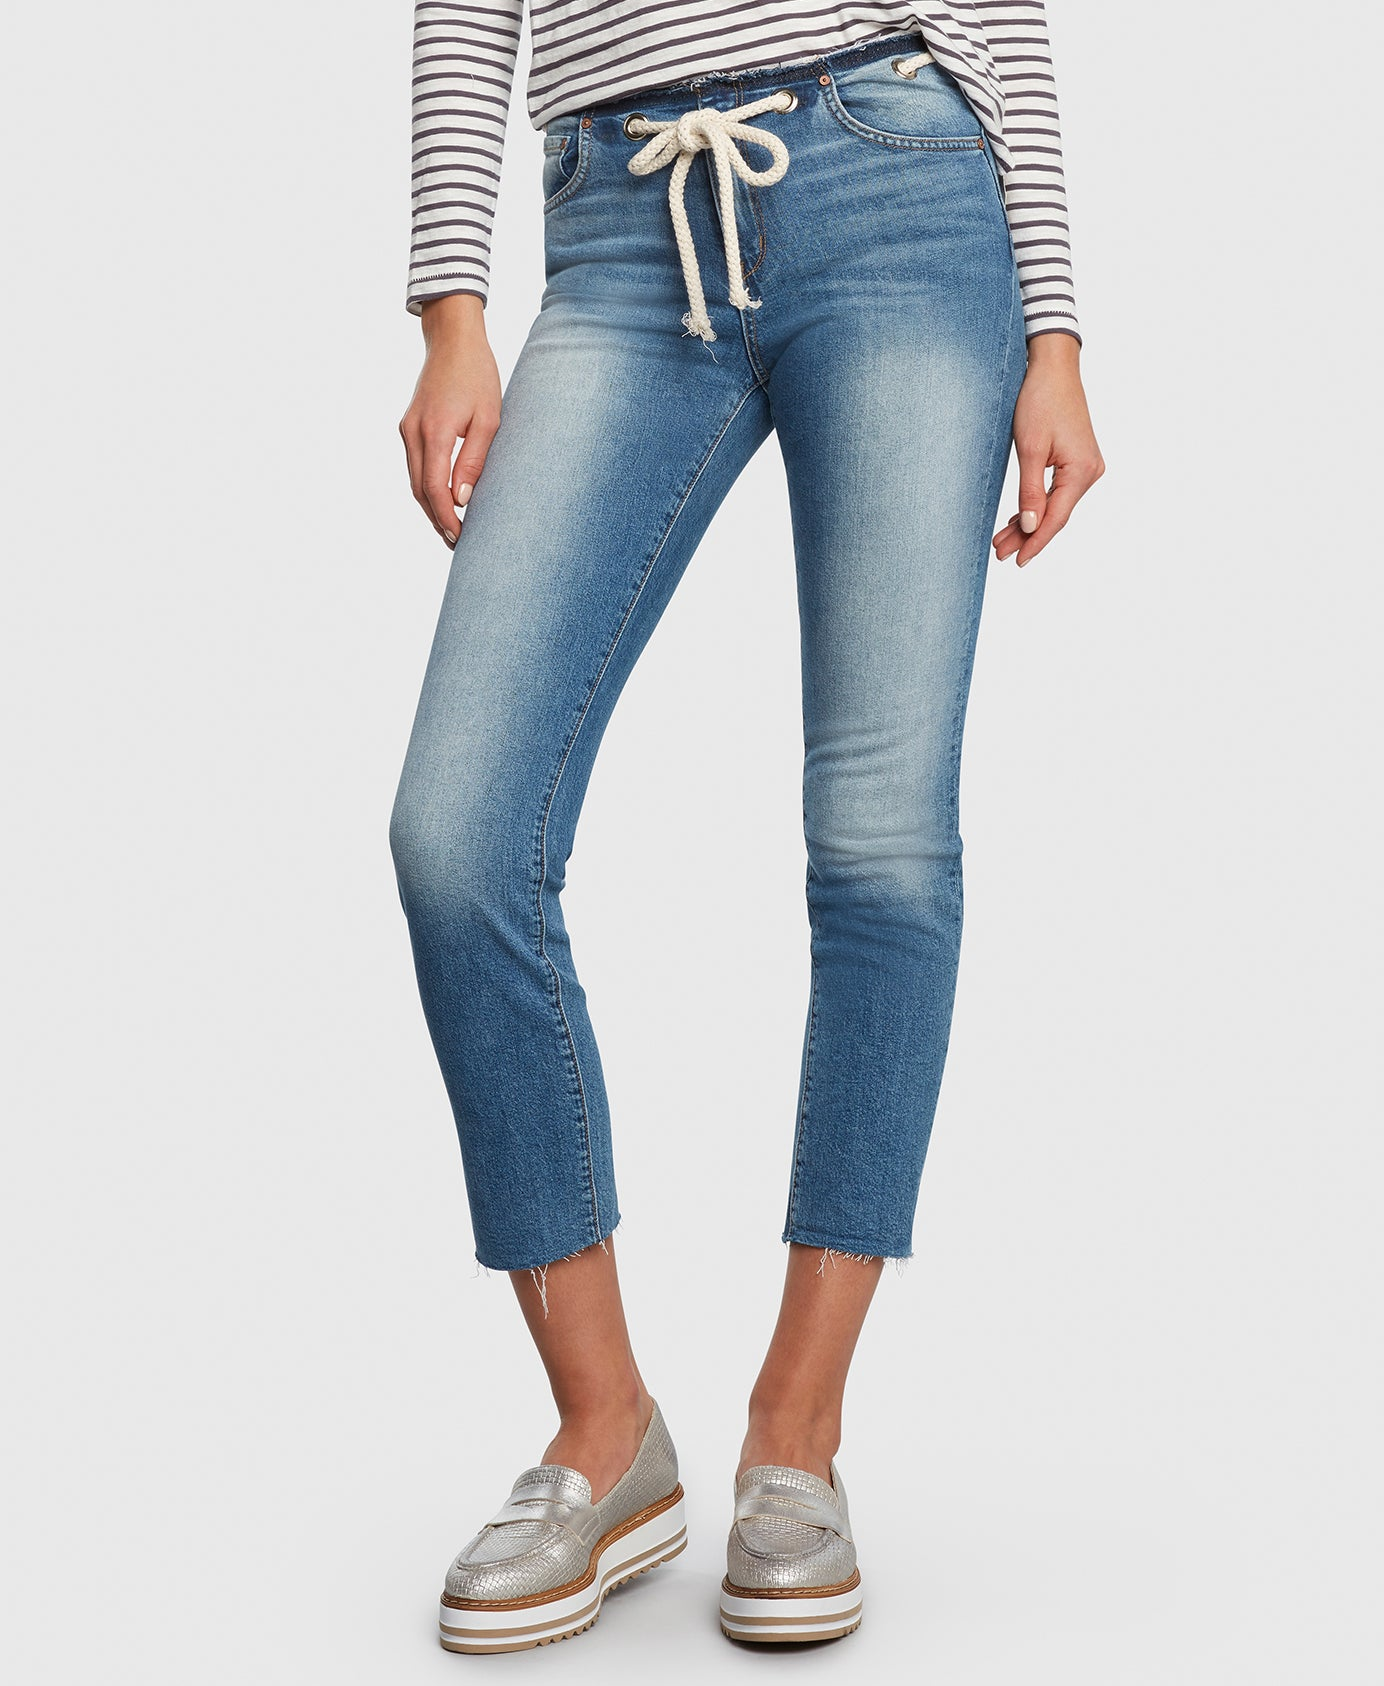 Principle CASTAWAY in Holiday cropped jeans detail